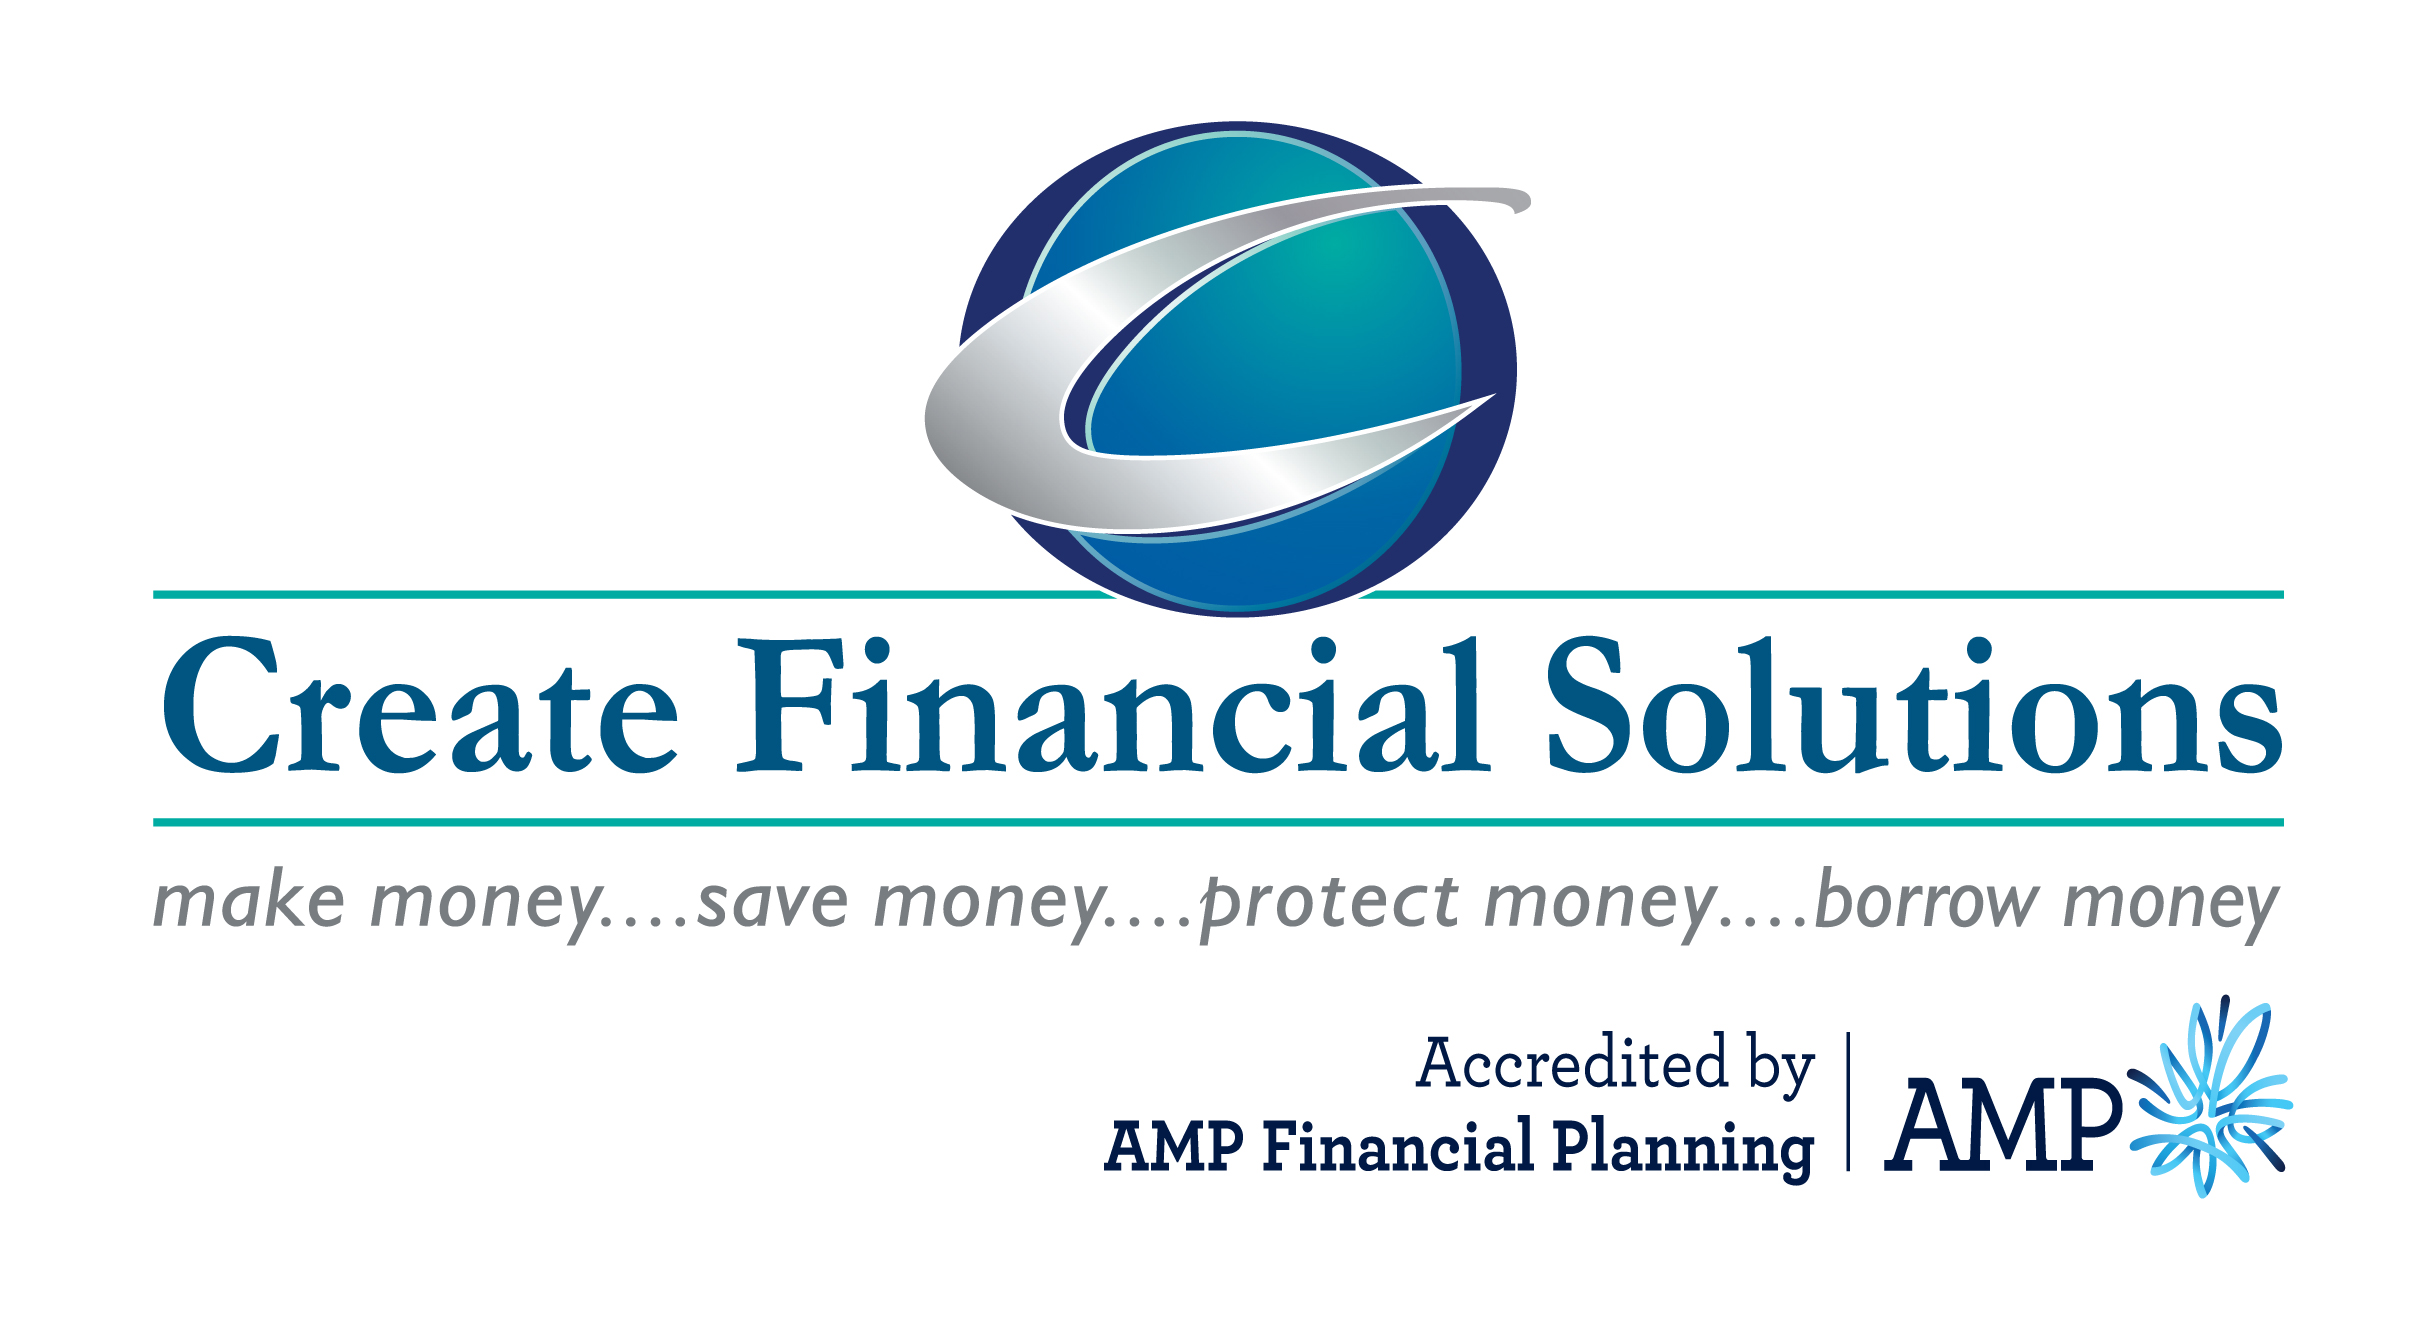 Create Financial Solutions